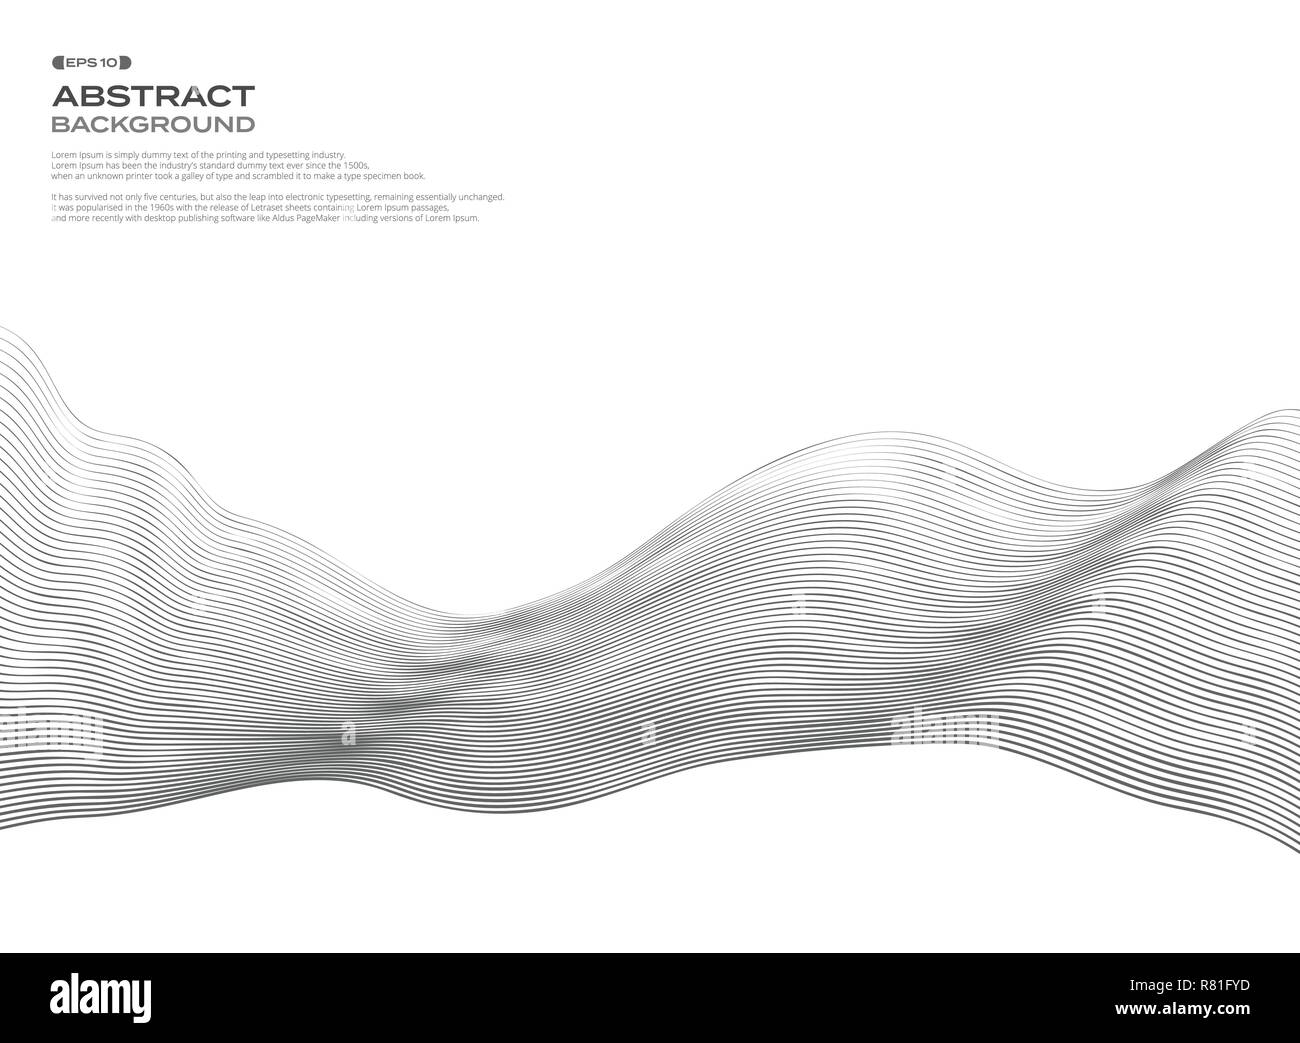 Abstract of wavy element for design. Wave line pattern with lines created using blend tool. Vector illustration eps10. - Stock Image